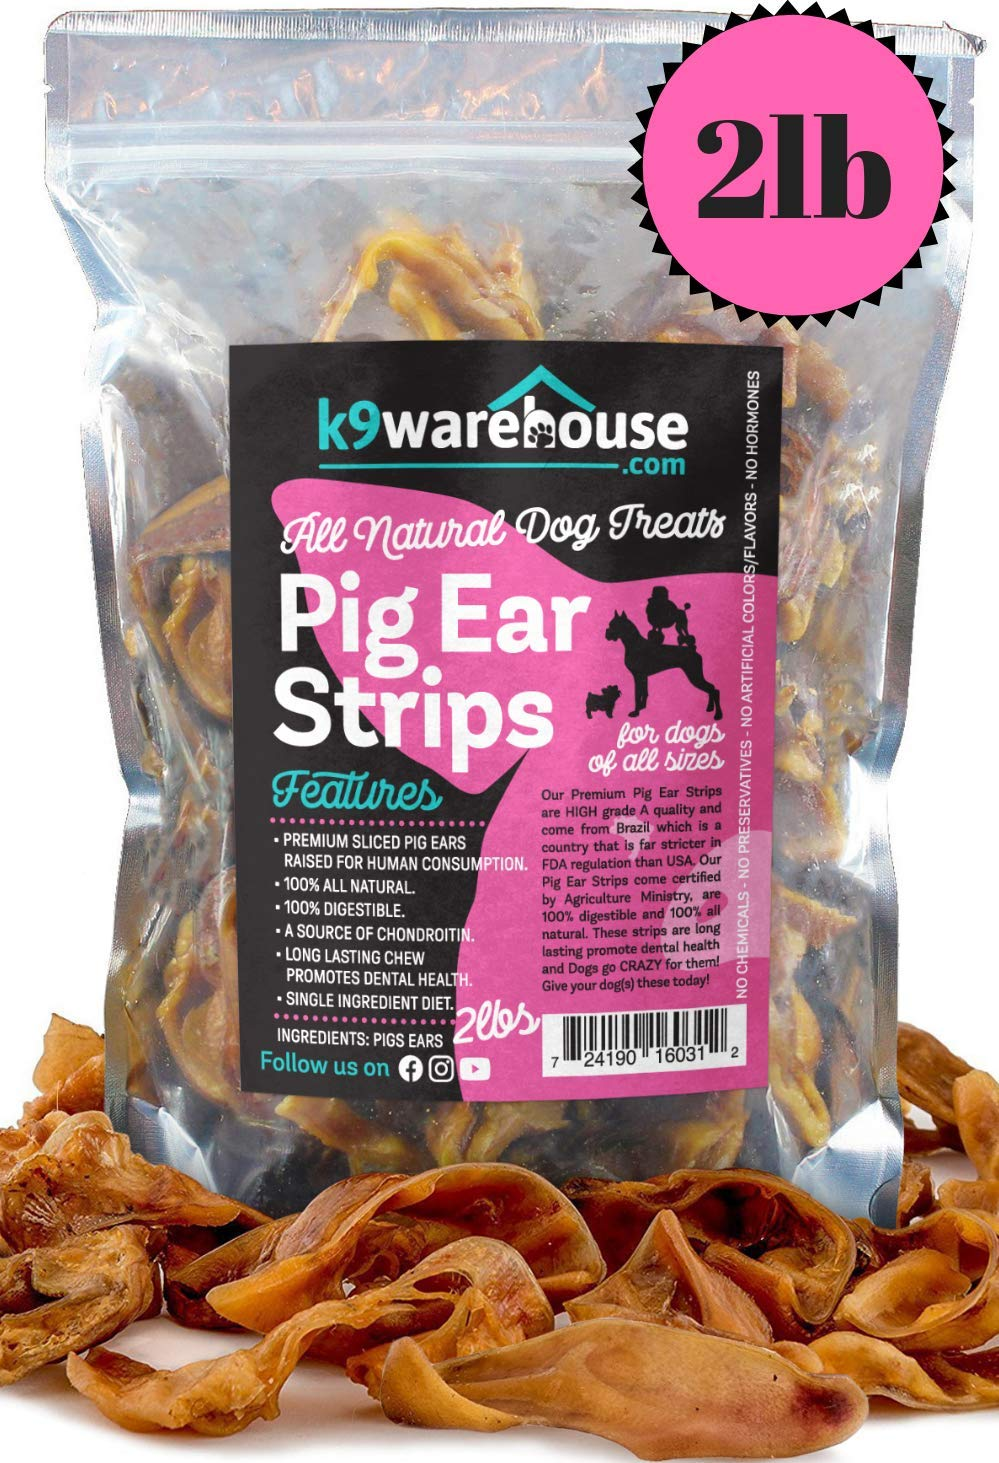 Pig Ear Strips for Dogs | Two Pound Bag (40+) of All Natural Healthy Dog Treats | Made of Pure Cut Pork Slivers | Best Alternative to Rawhide Chews | Thick Cut Treat for Small, Medium and Large Dogs